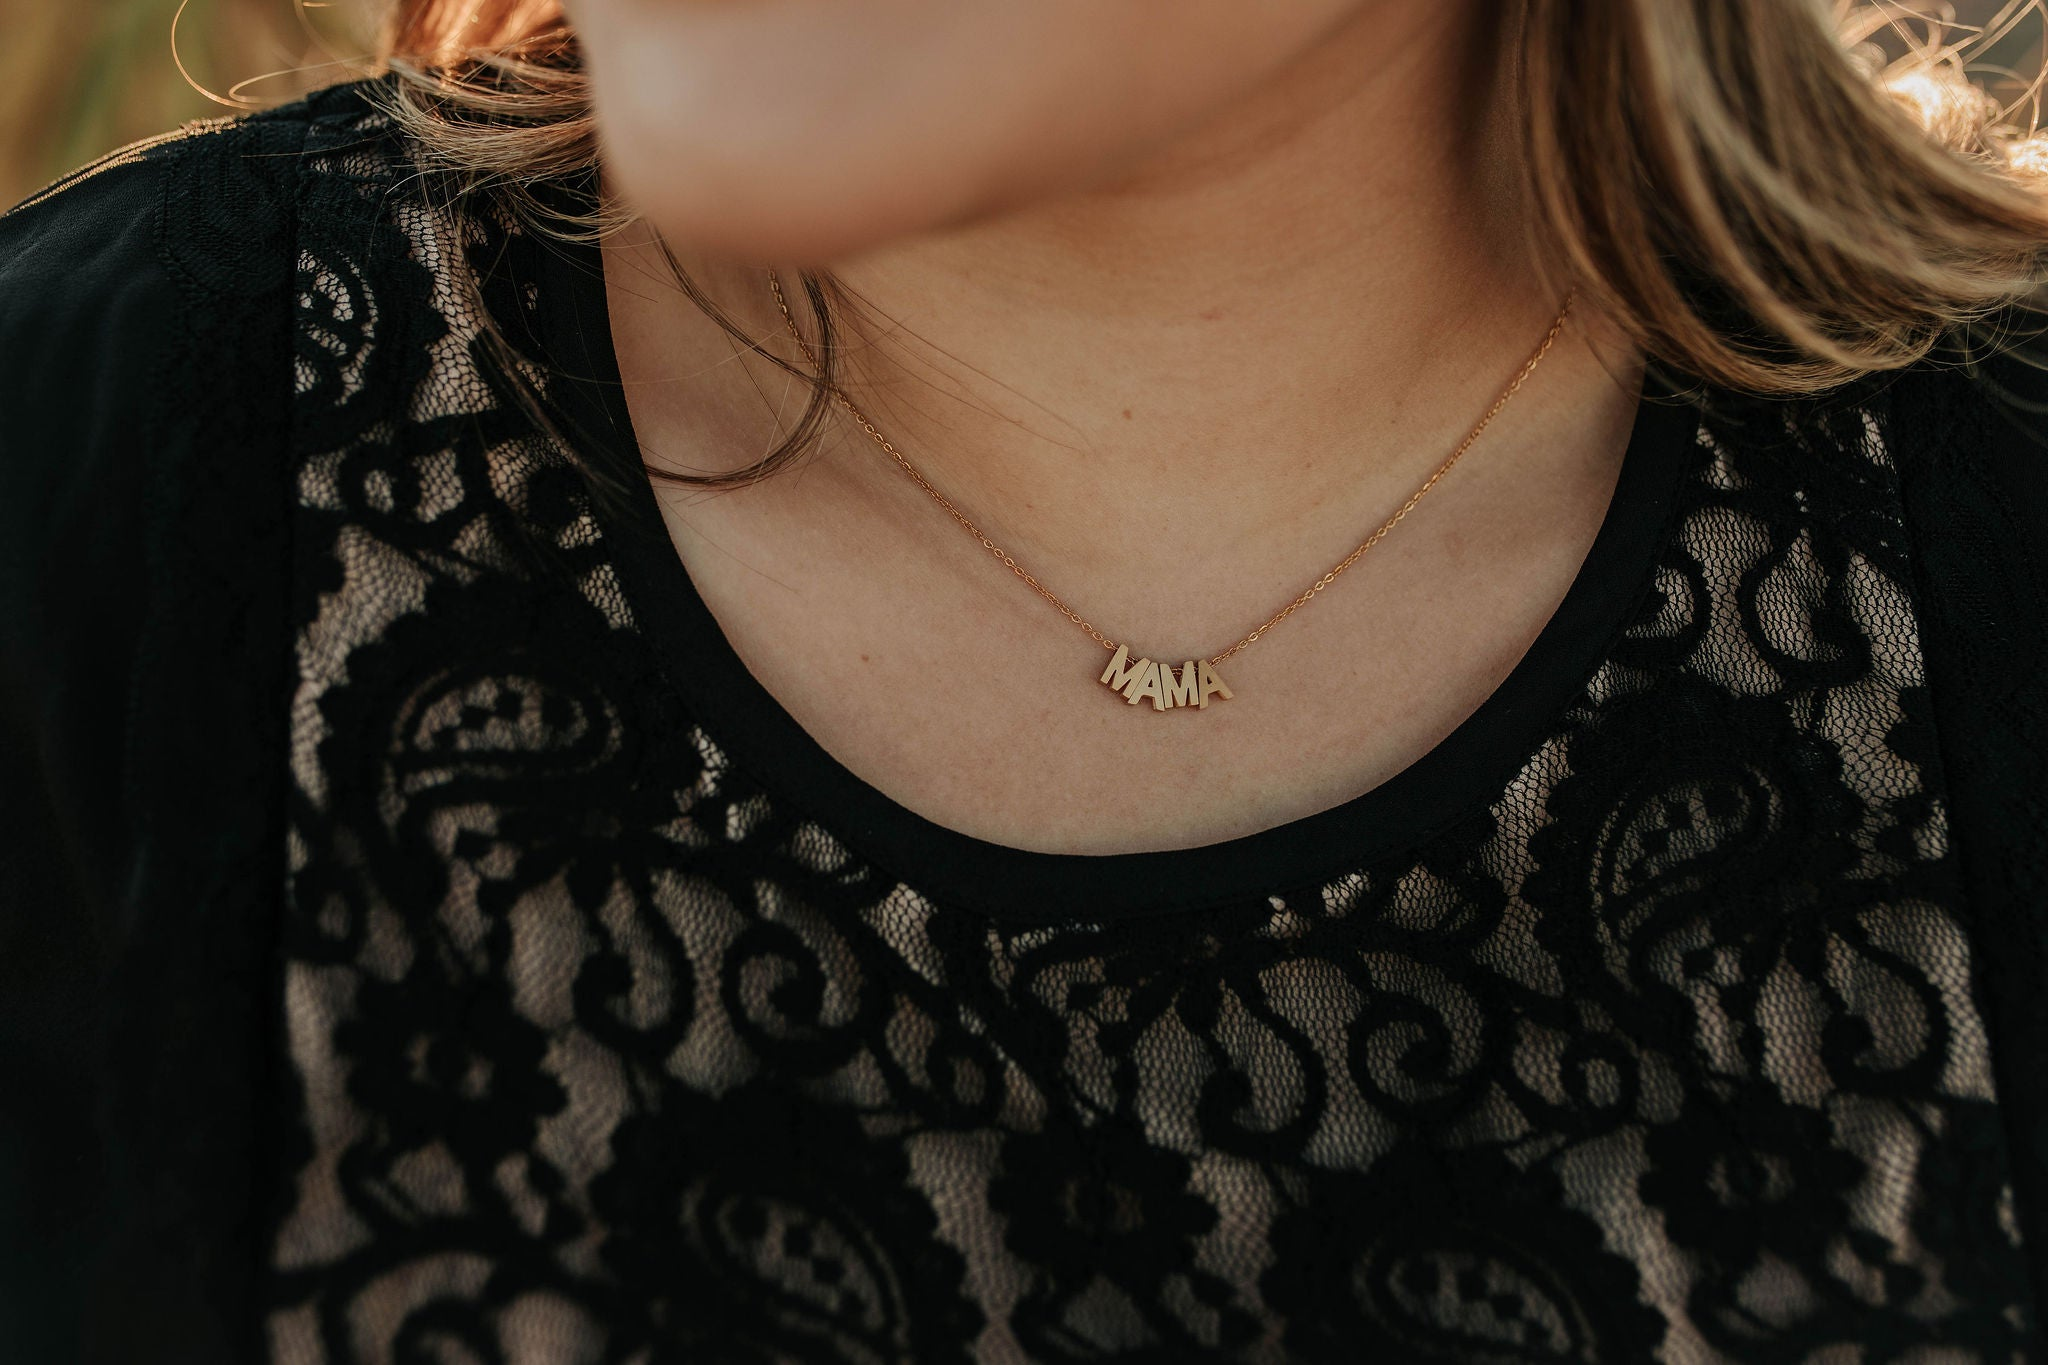 THE MAMA LETTER NECKLACE IN GOLD